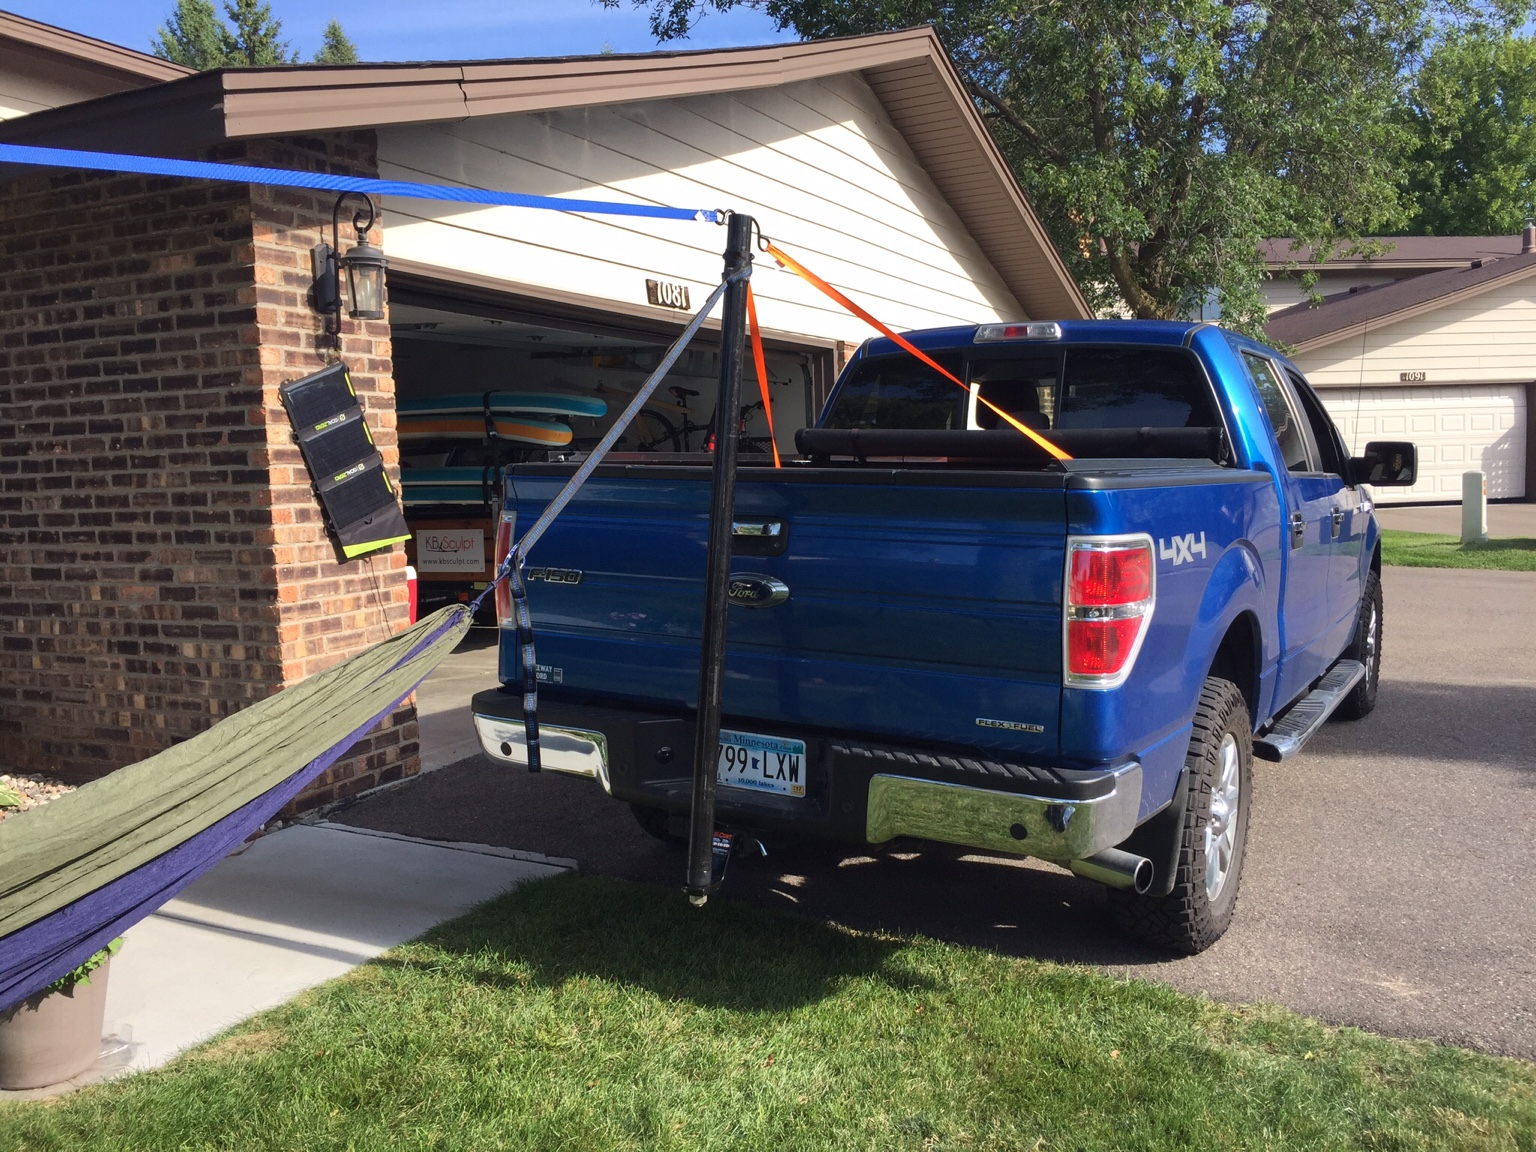 Truck Hitch Hang Tree To Truck Hang One Tree Hang